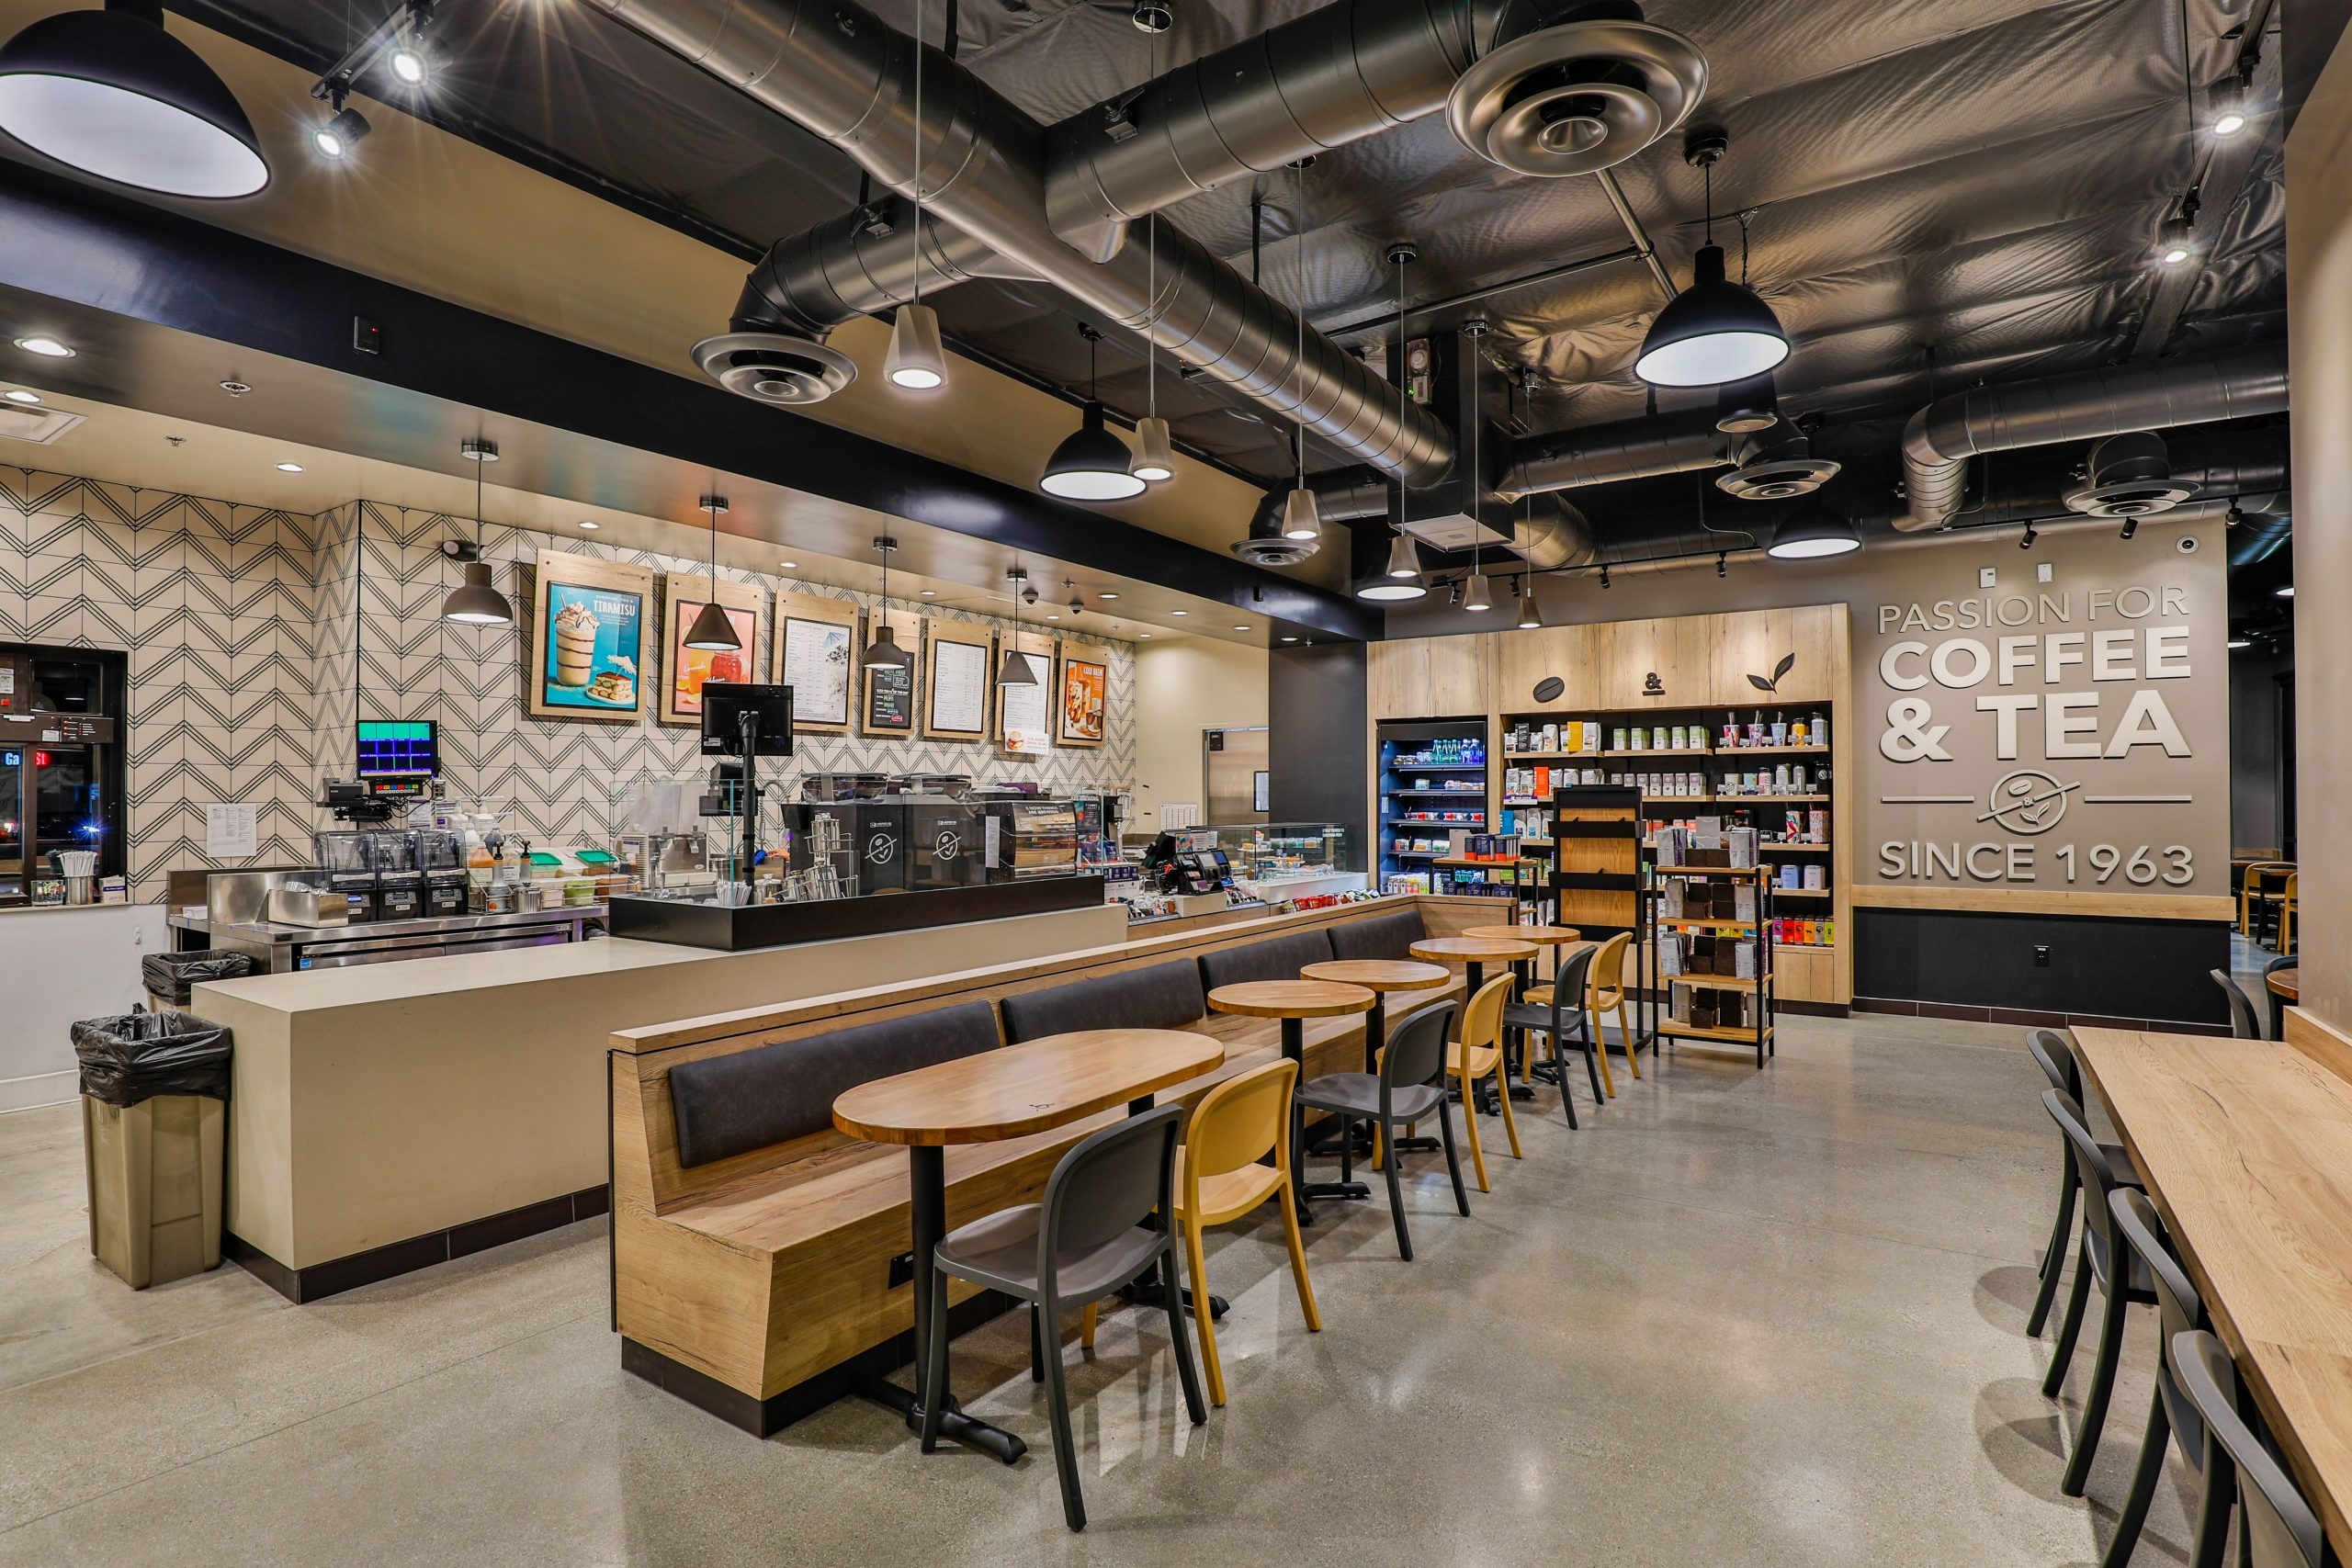 New CEO and New Direction for Coffee Bean and Tea Leaf